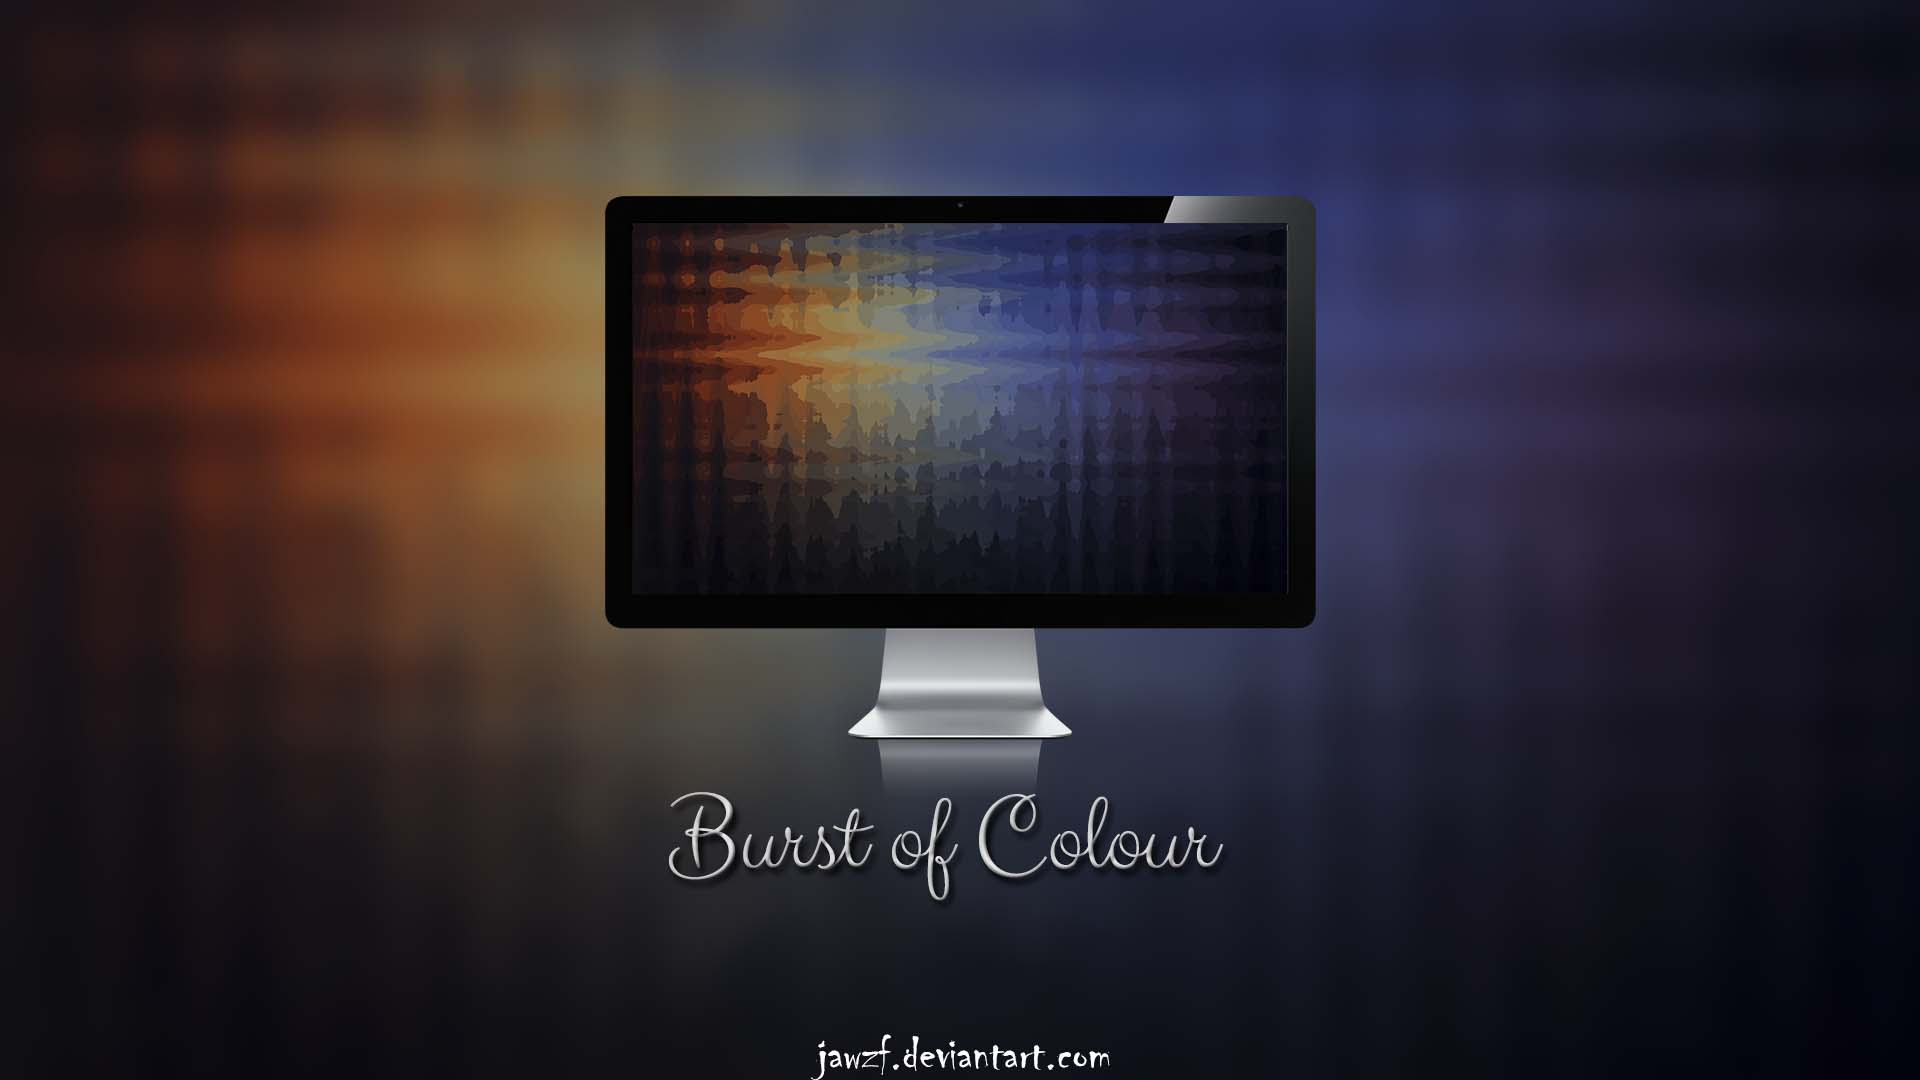 Burst Of Colour by jawzf